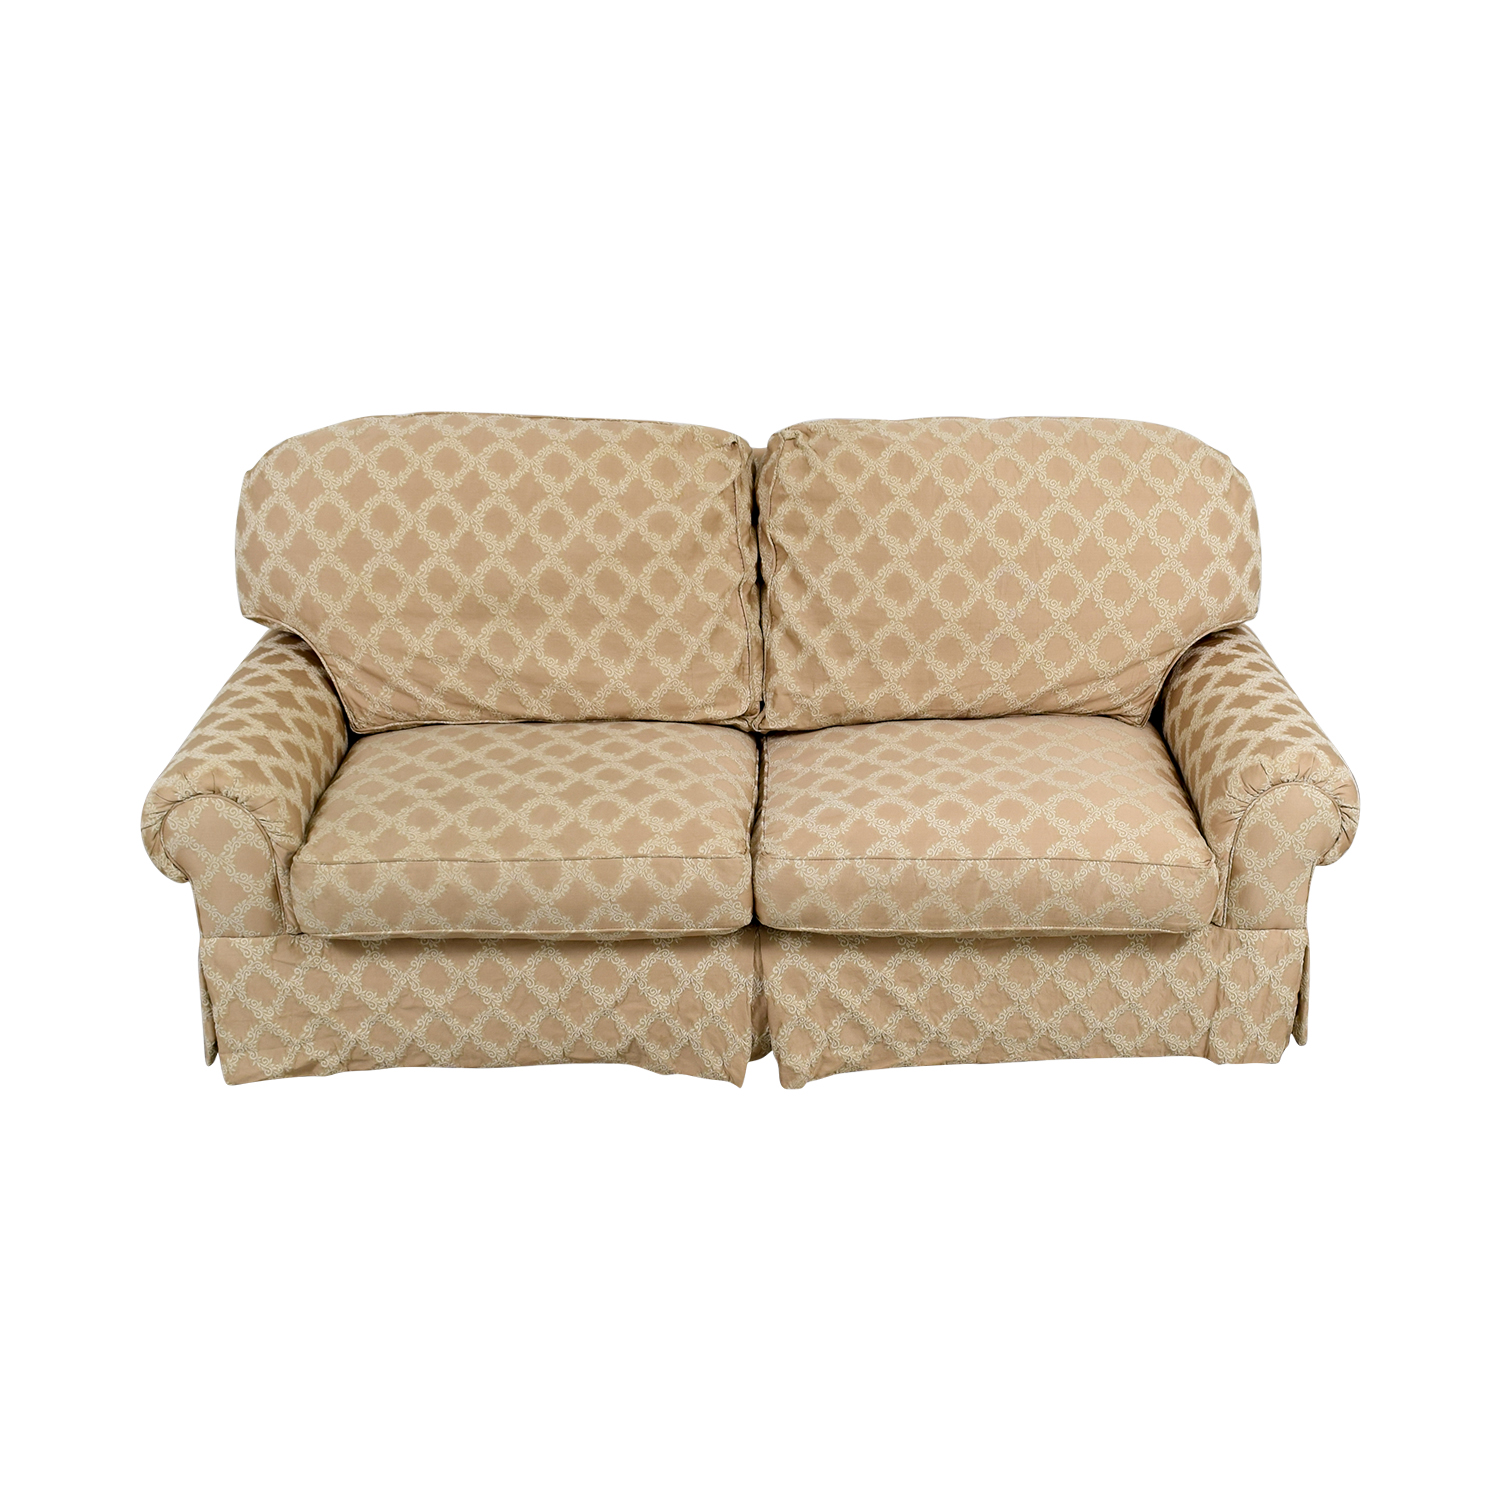 shop J. Royale Furniture Loveseat J. Royale Furniture Loveseats